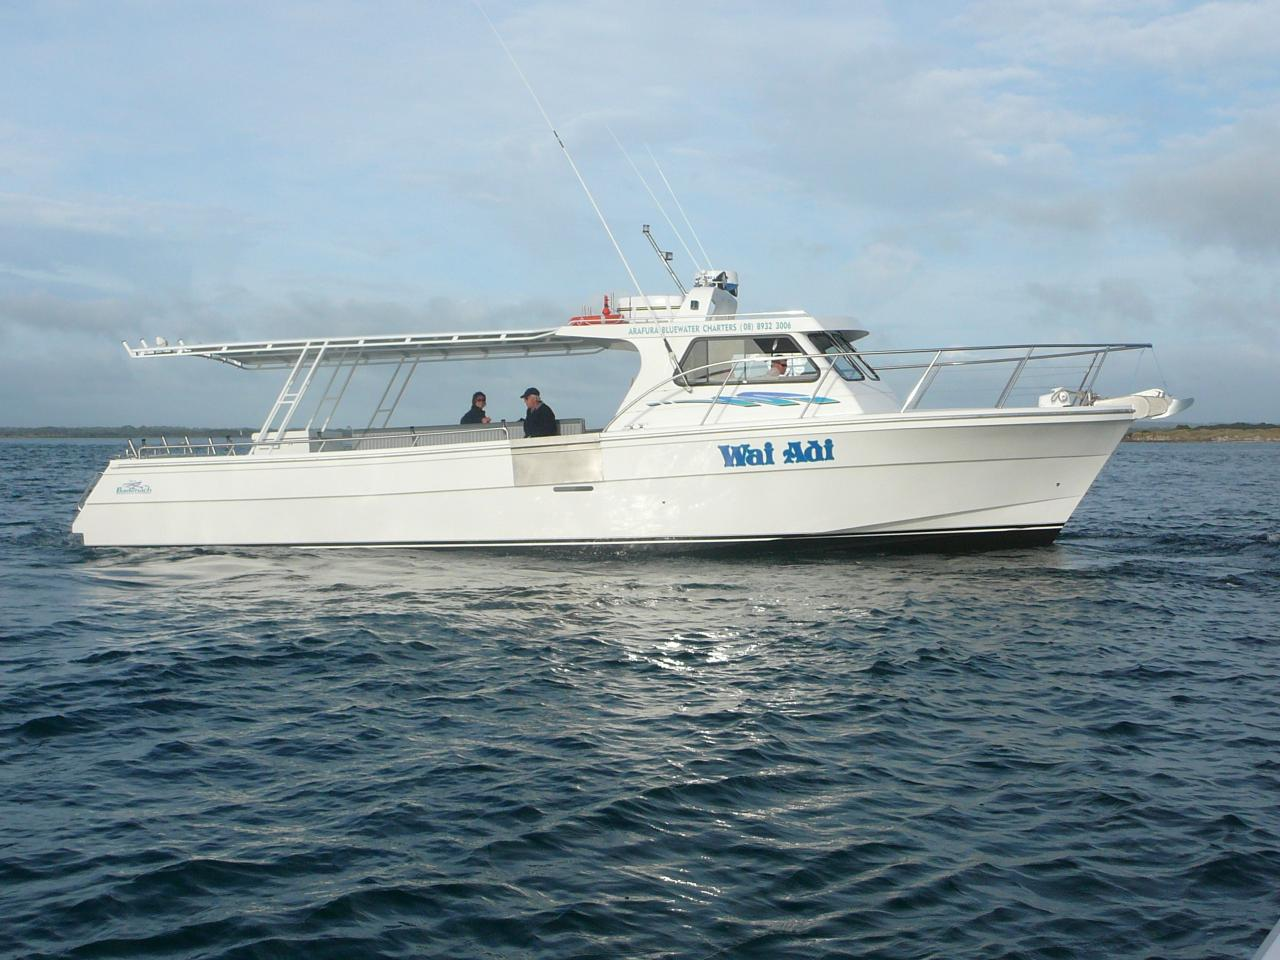 Wai Adi Half Day Morning Offshore Private Sole Boat Fishing Charter (max 16 persons)